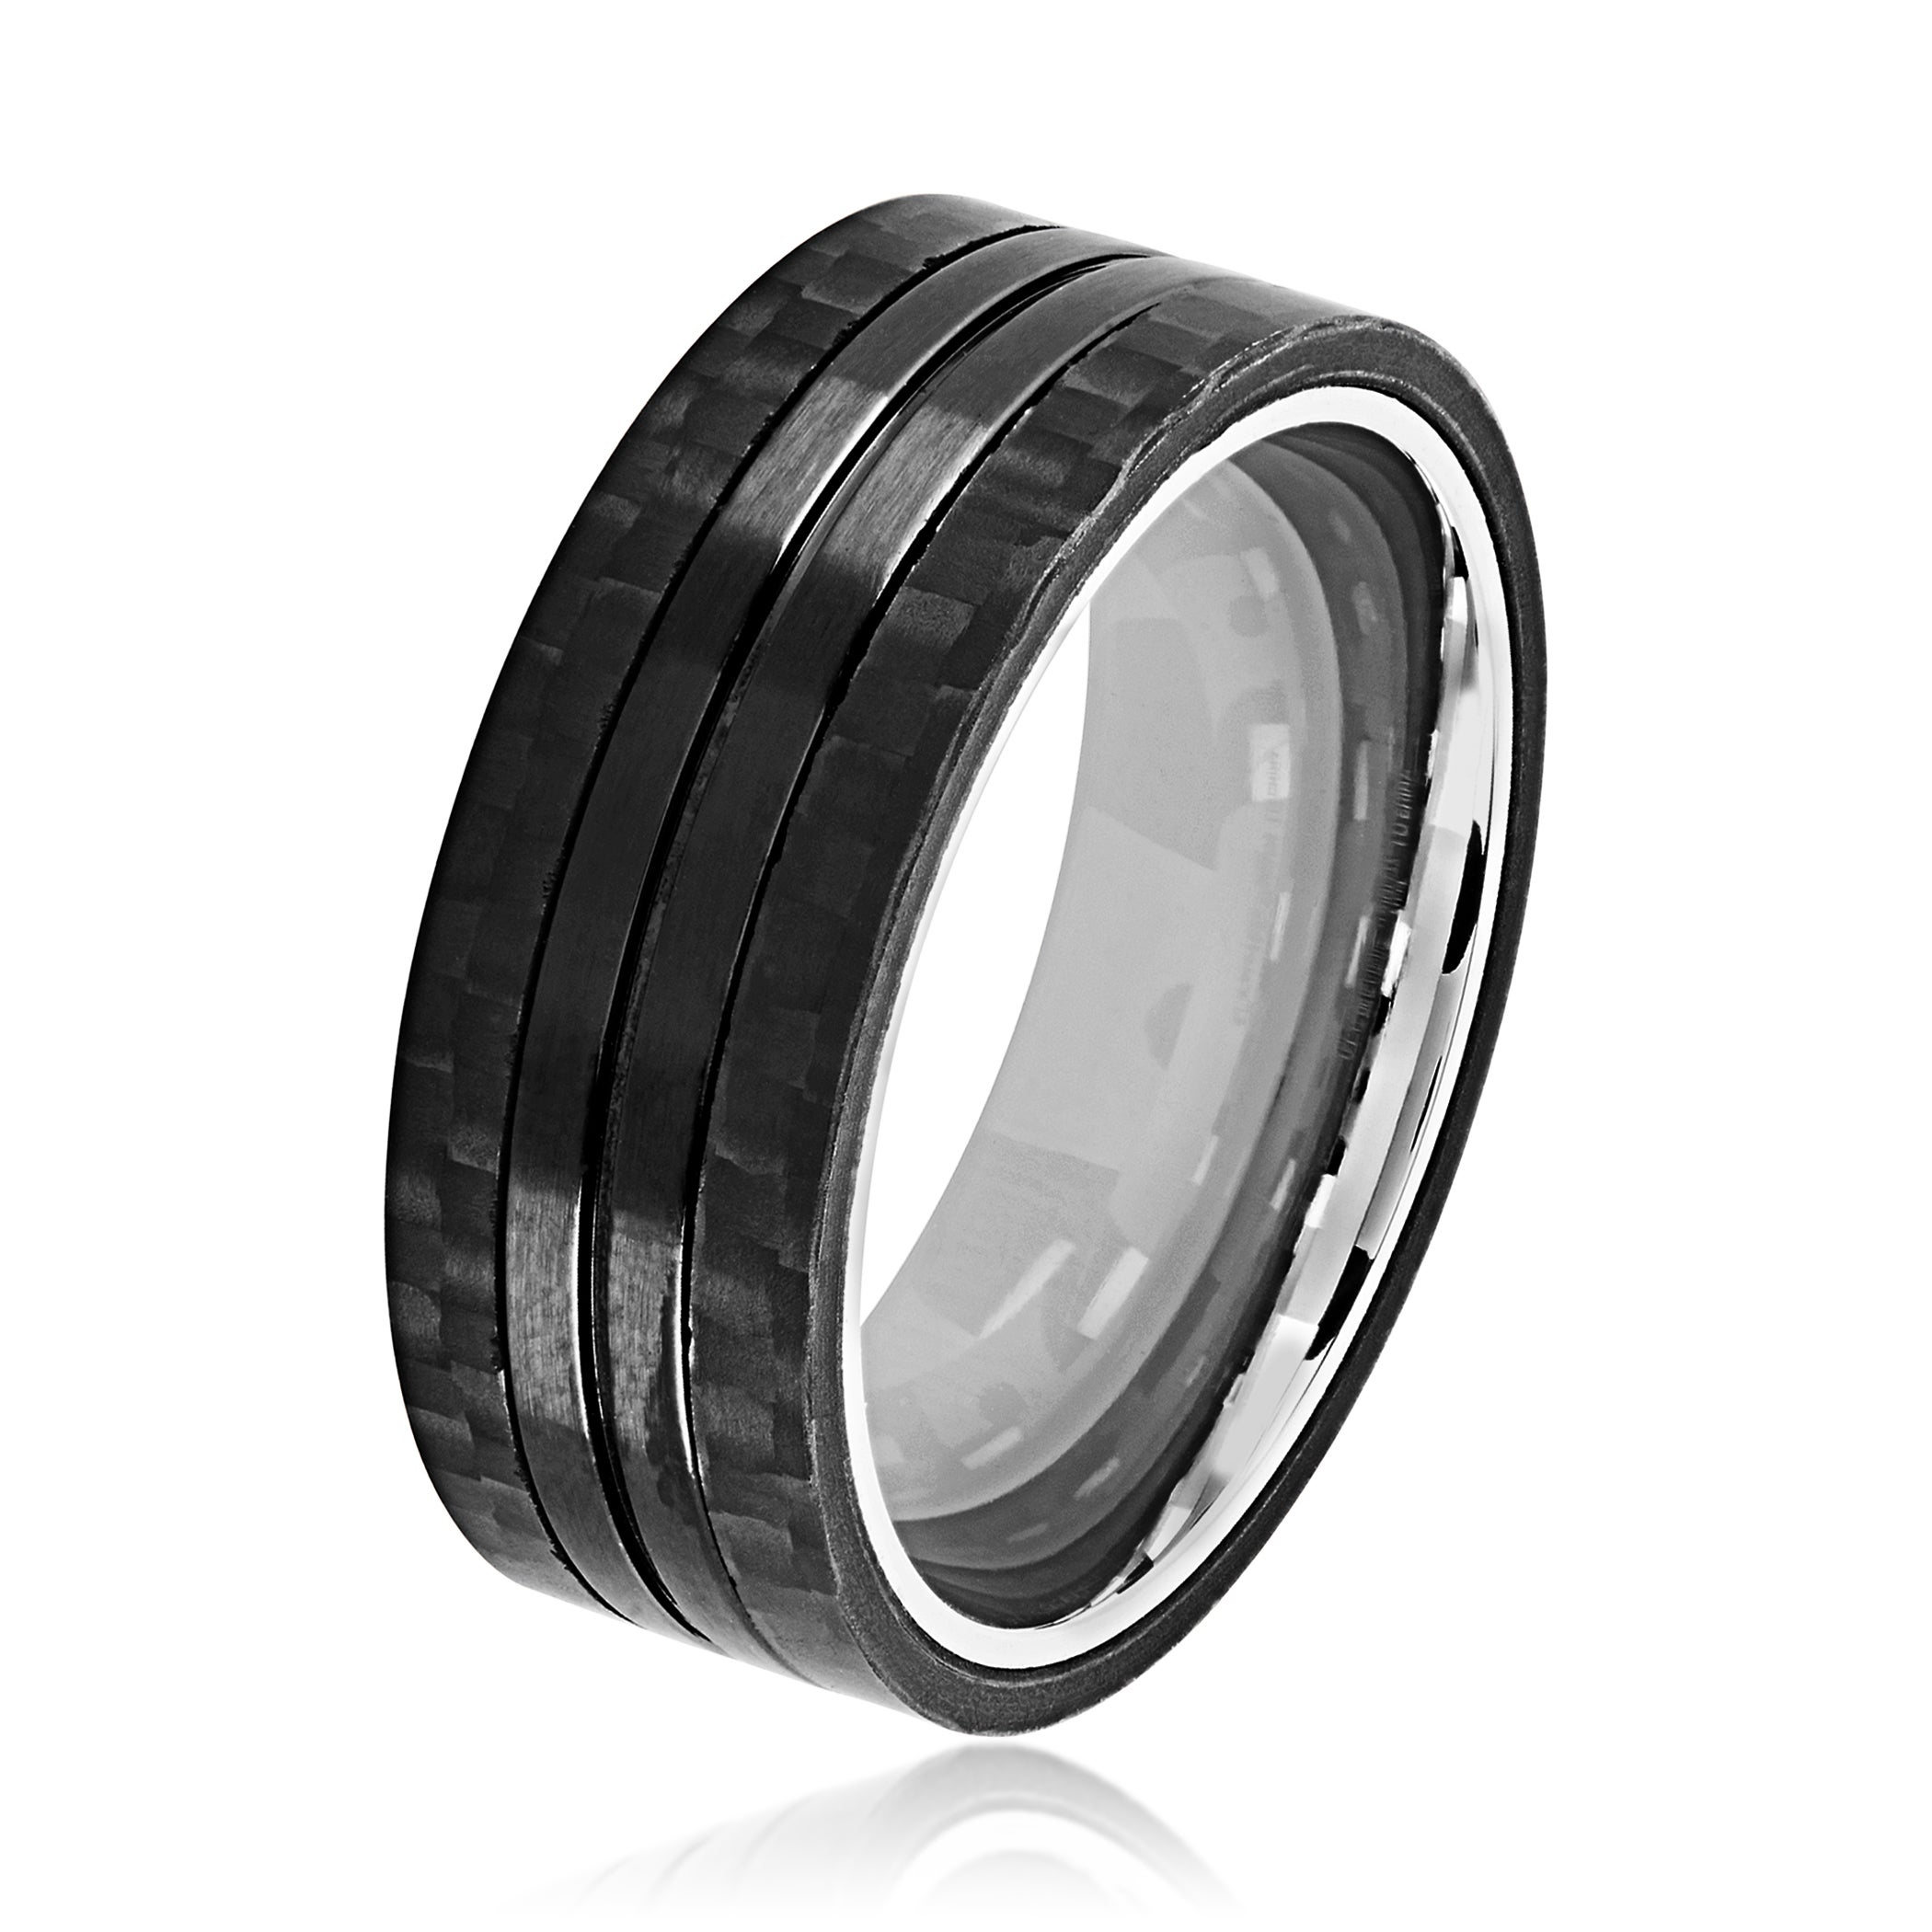 size 8 in Gift Box Black Plated UnisexTitanium Ring Band with Grooved Accents